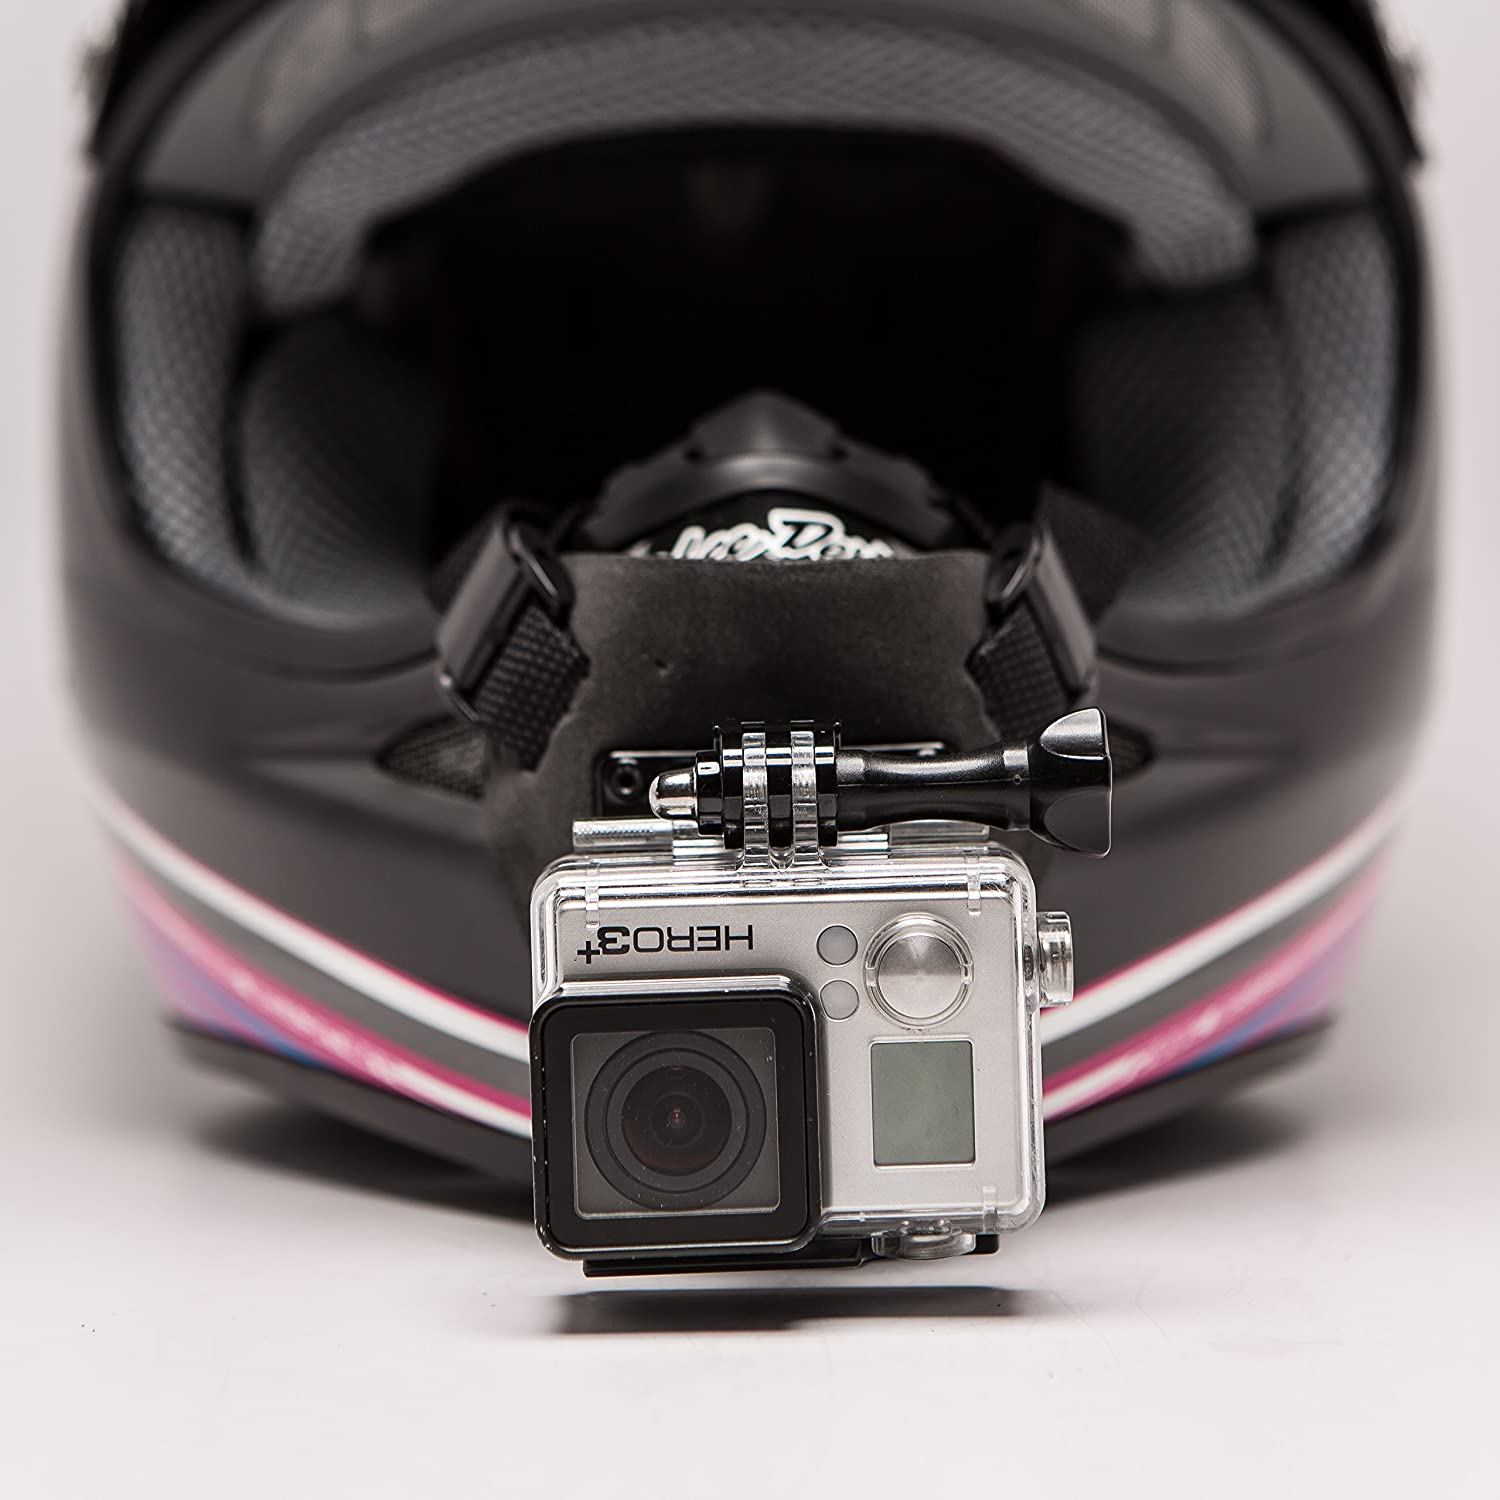 Amazon.com : Full Face Helmet Chin Mount for GoPro : Camera & Photo